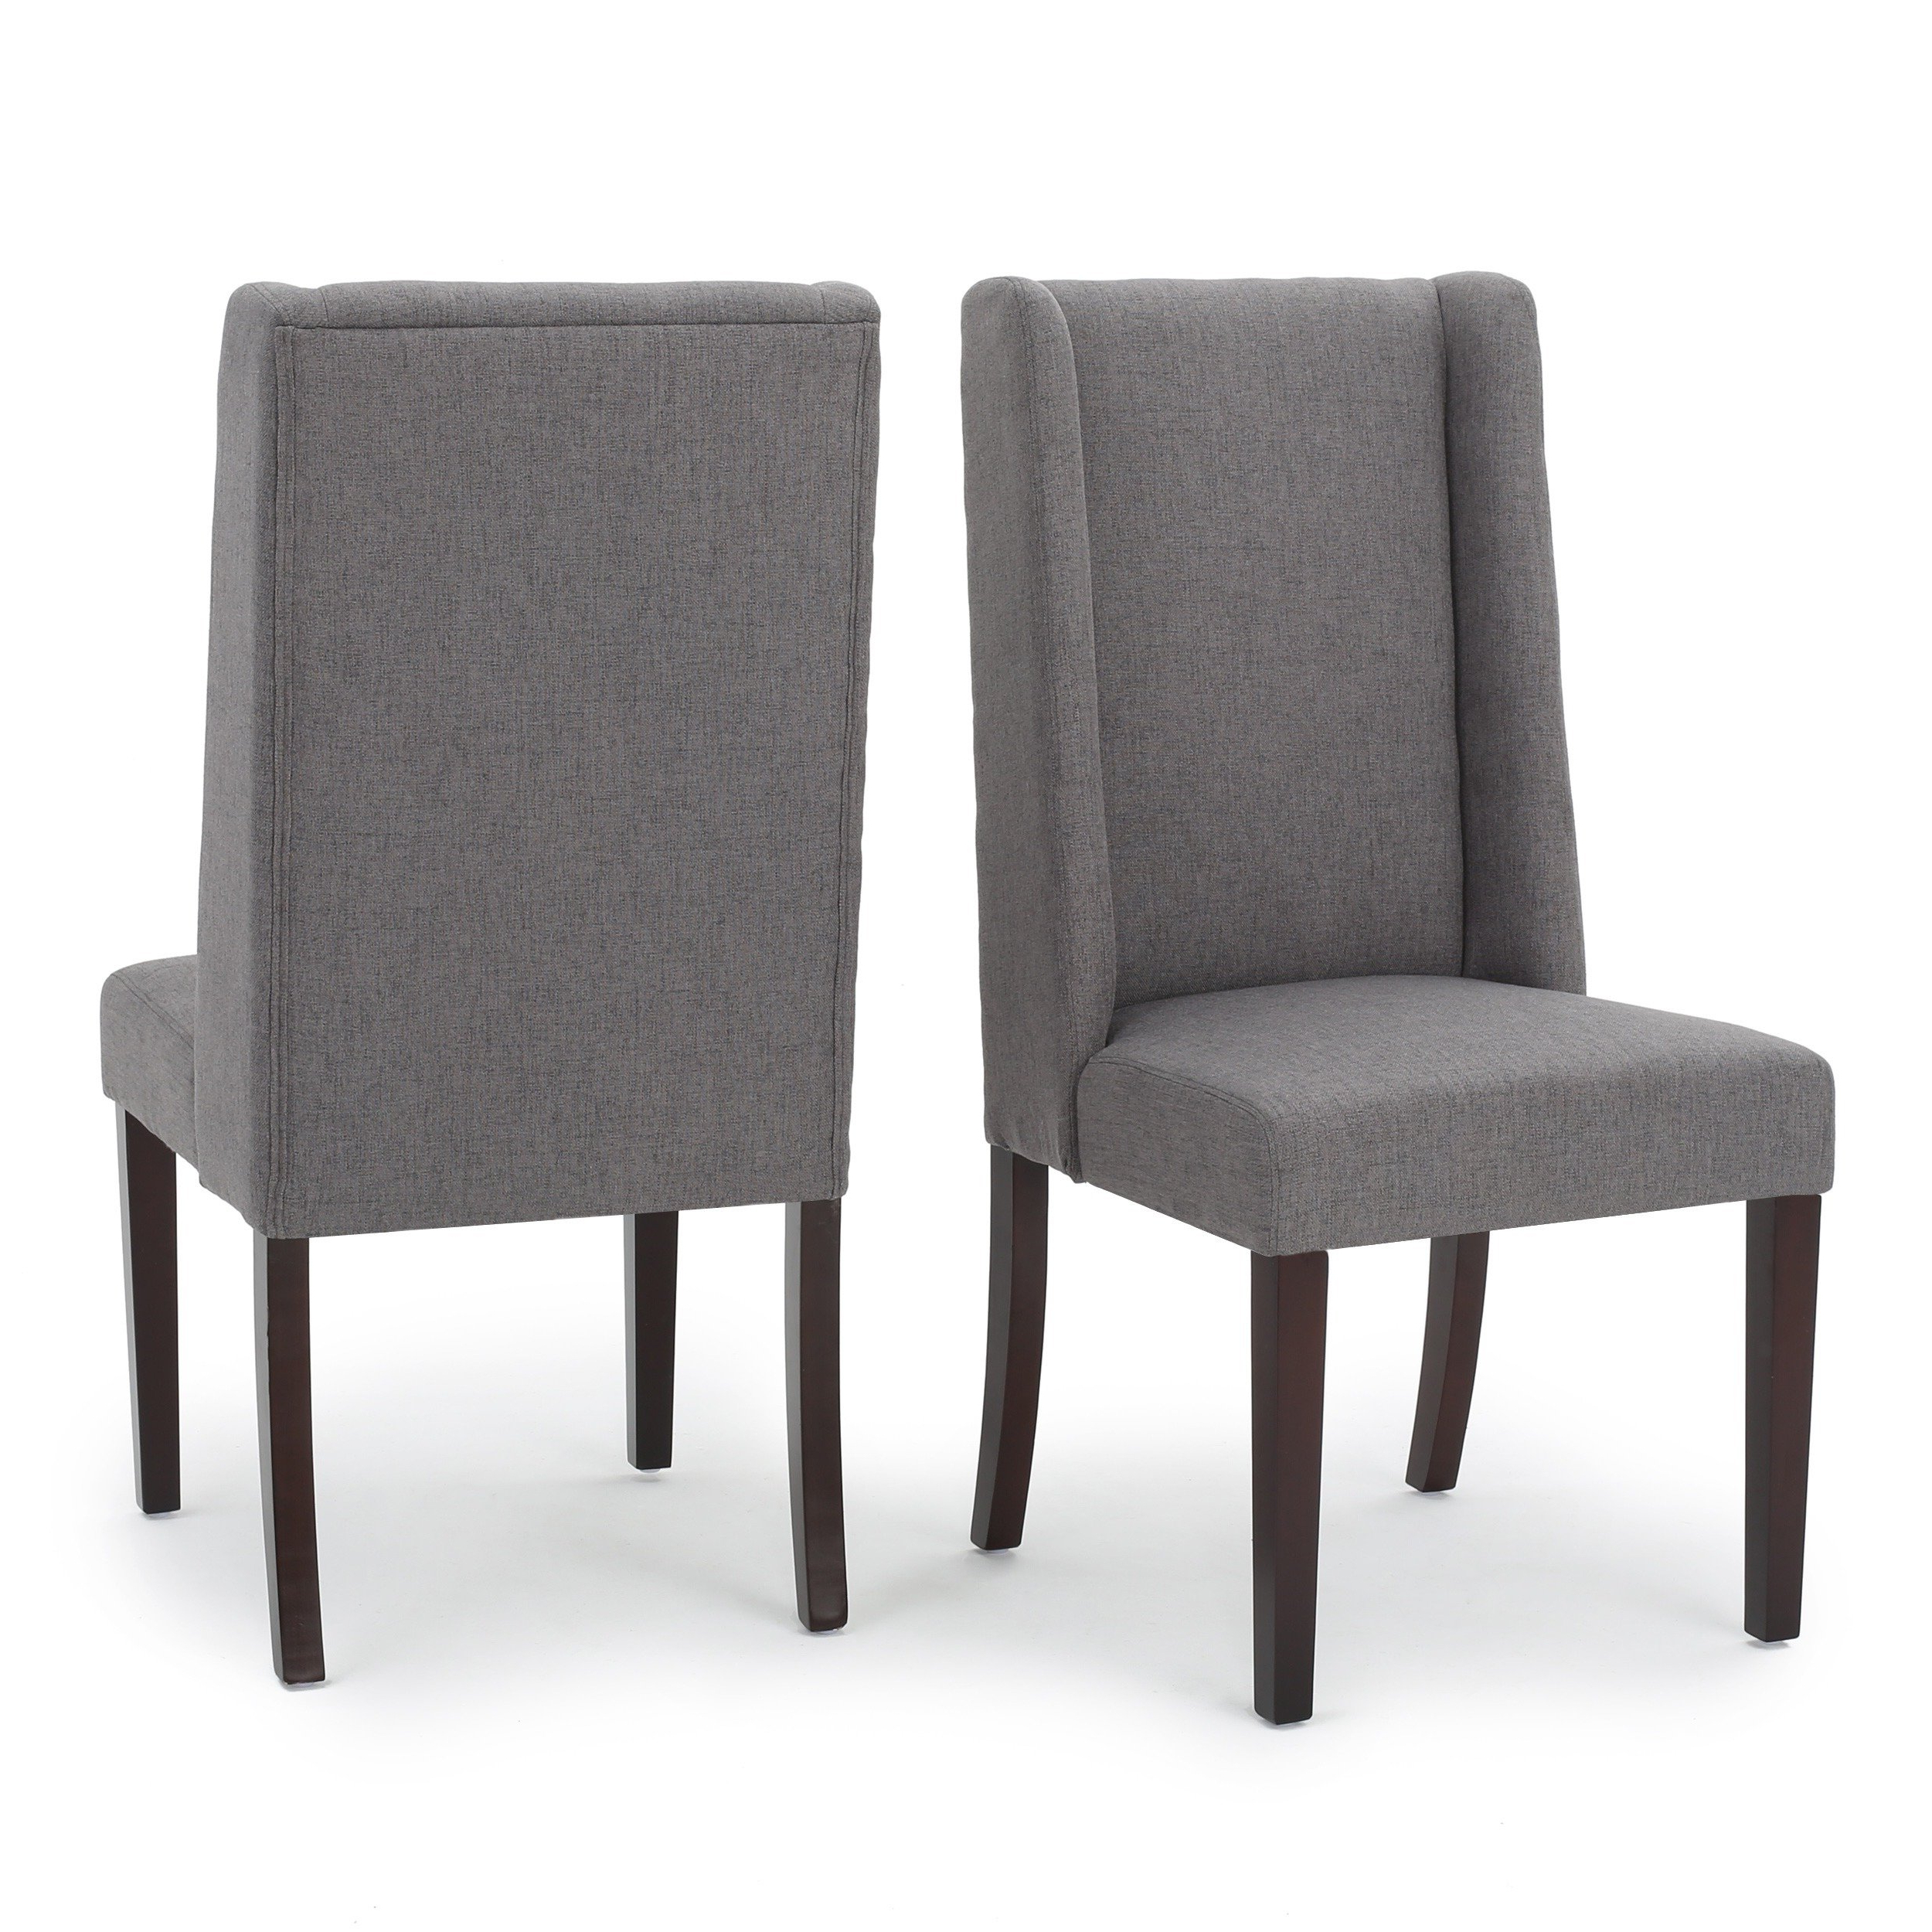 Rory Sofa Chairs Inside Most Recent Shop Rory Wing Back Fabric Dining Chair (set Of 2)christopher (View 11 of 20)